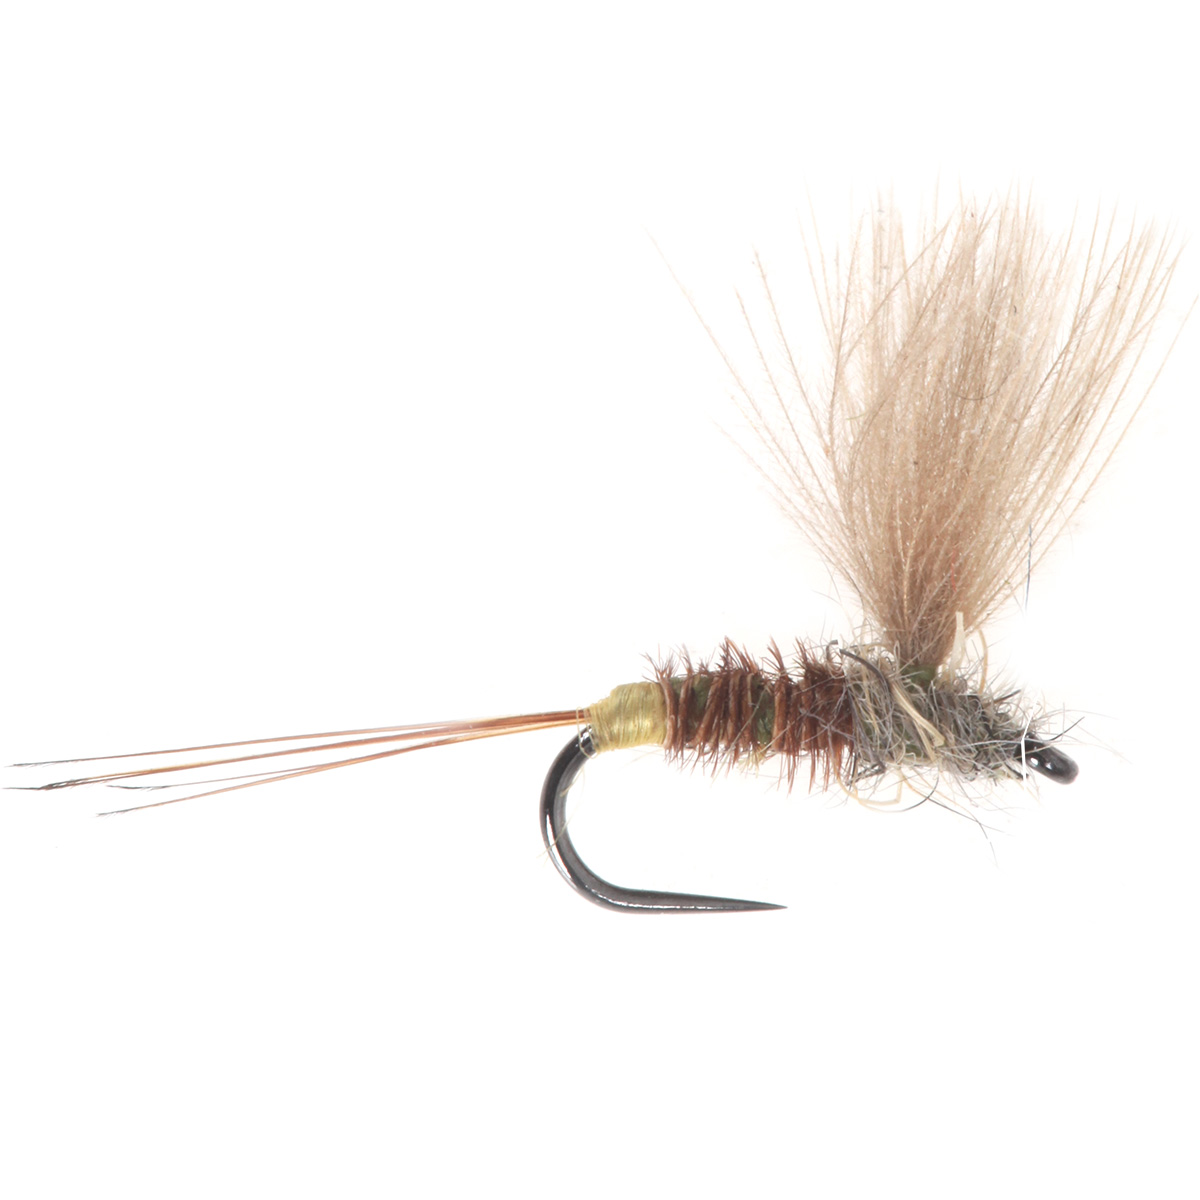 No Hackle Pheasant tail